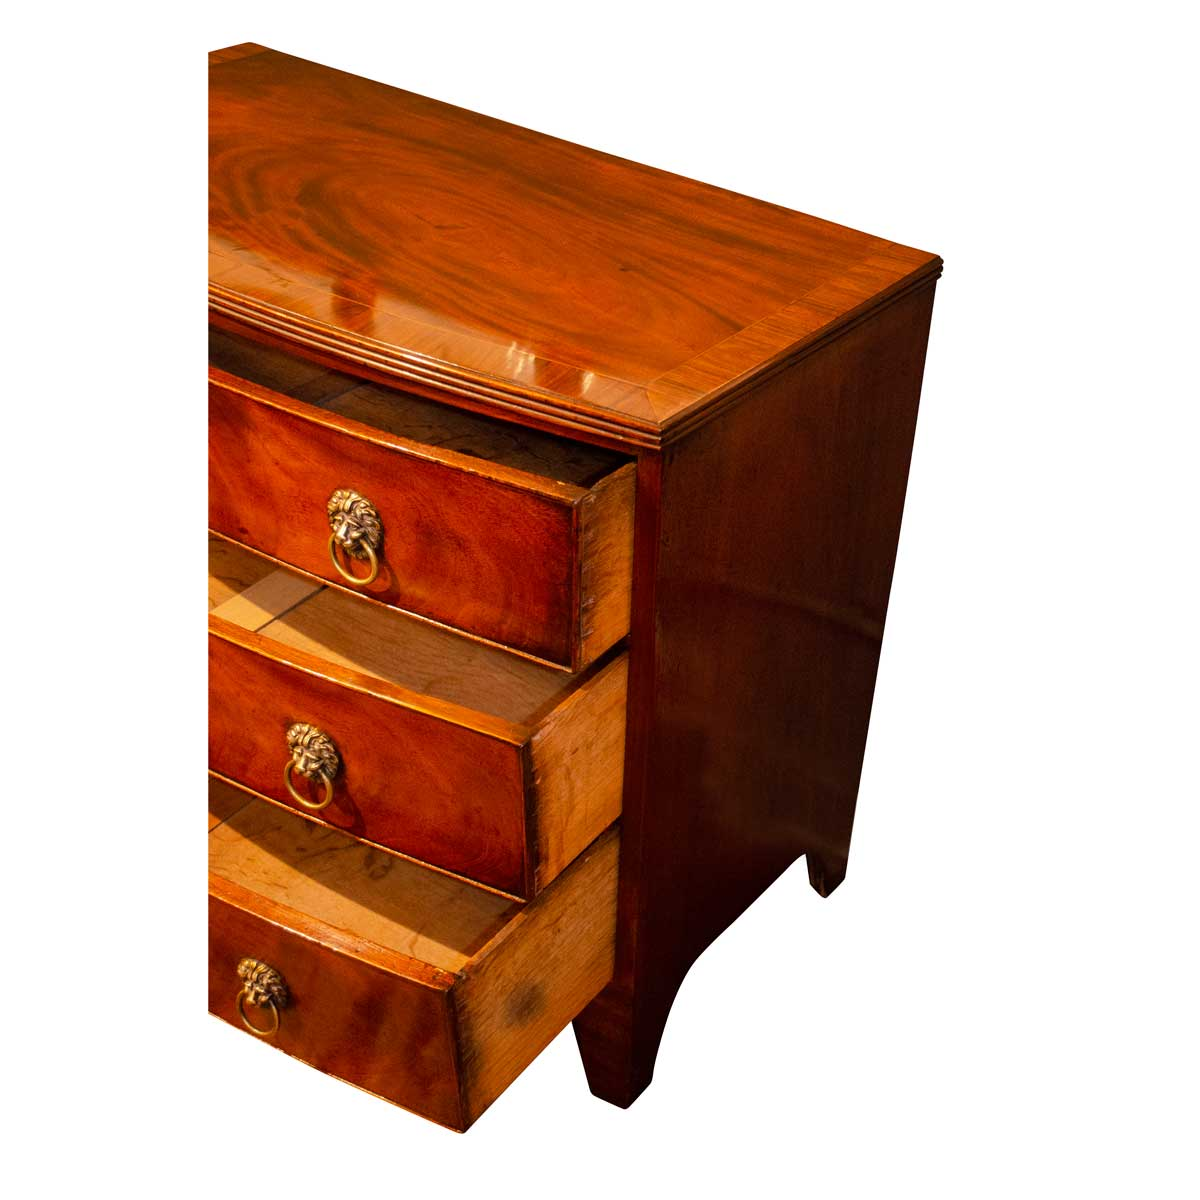 19th Century Regency Chest of Drawers